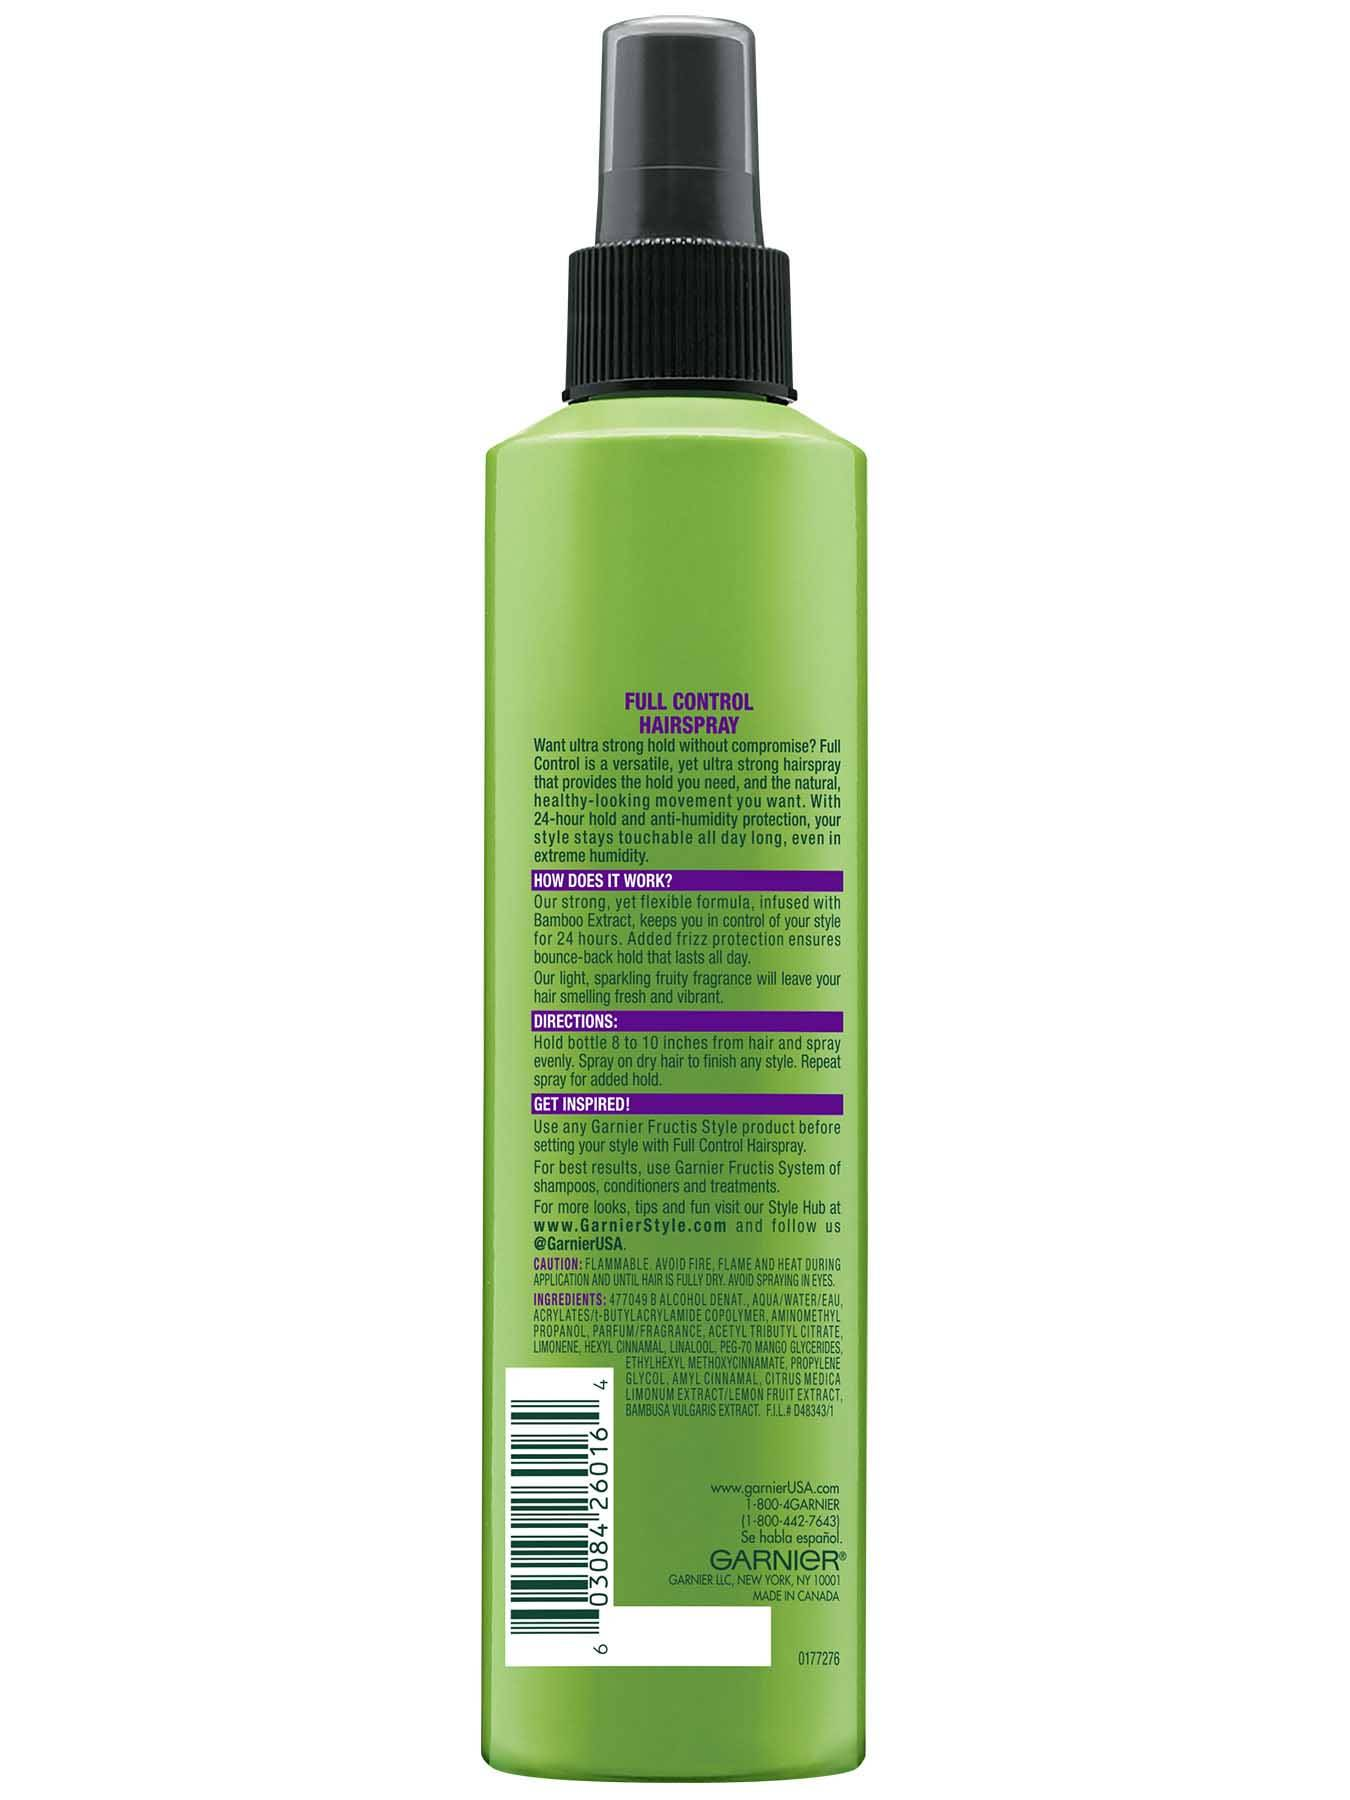 Back view of Full Control Anti-Humidity Non Aerosol Hairspray.